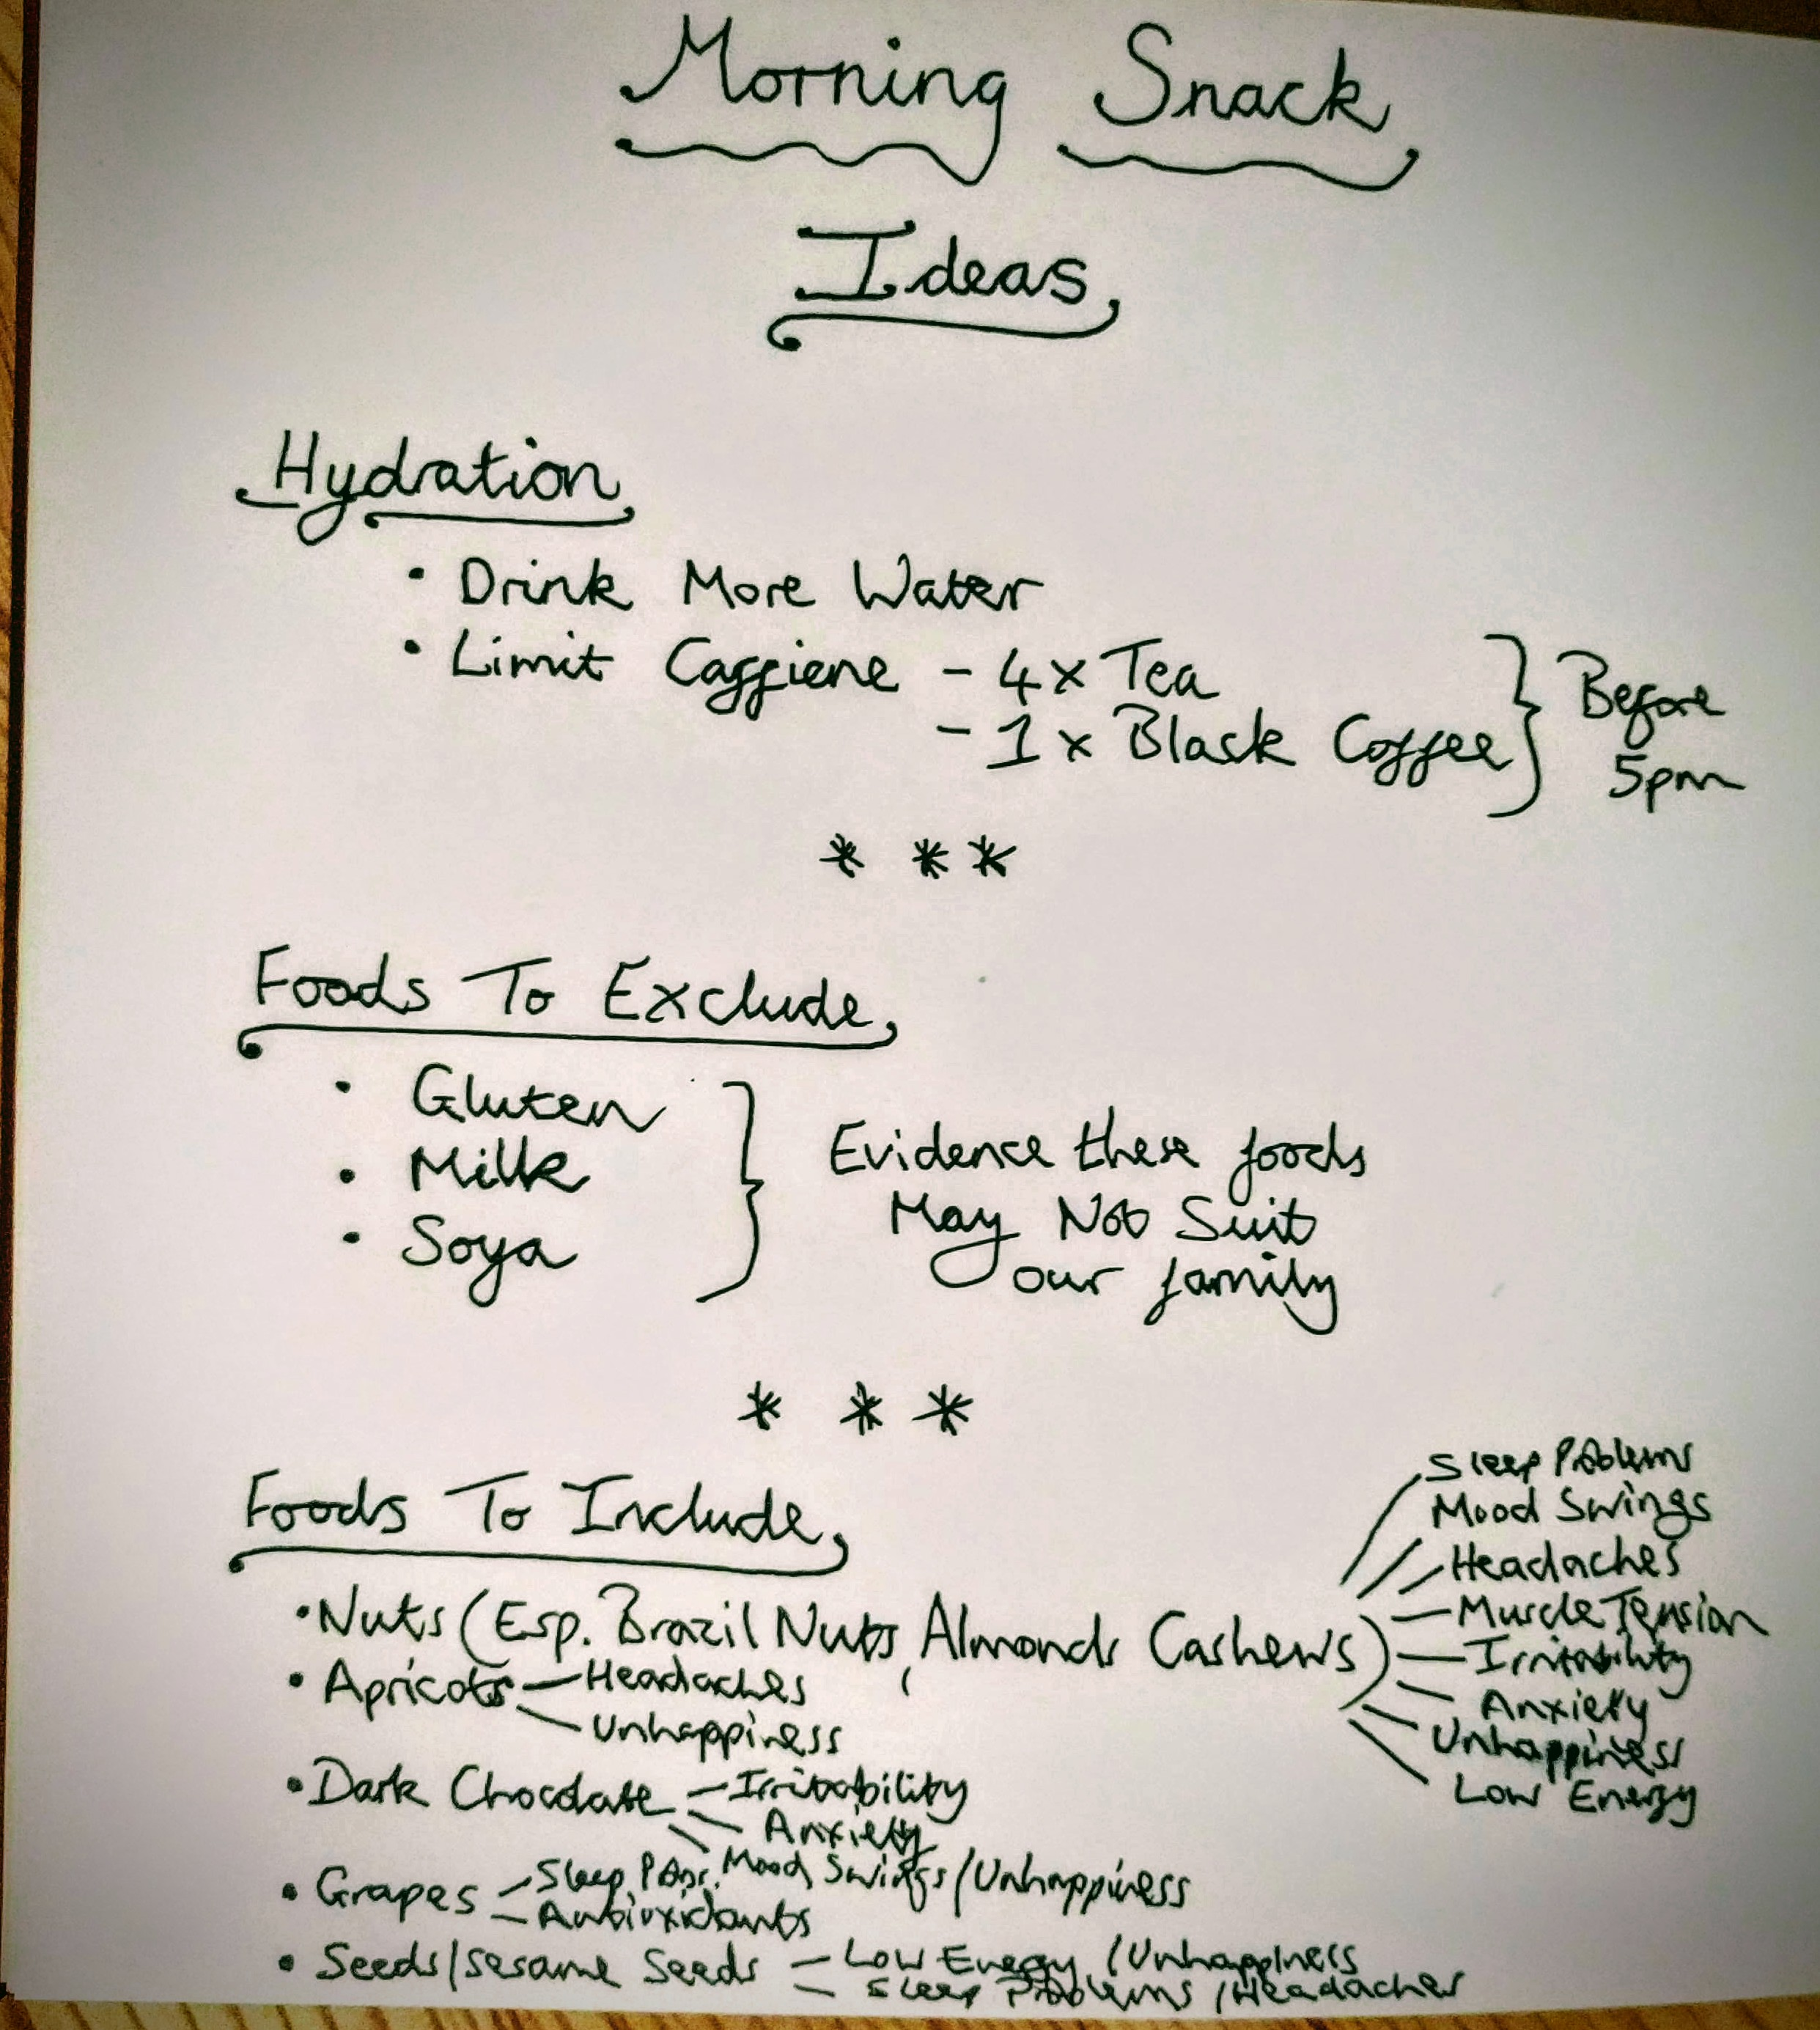 A handwritten note of snack ideas. The note lists ideas for Hydration, Foods to Exclude and foods to Include. The handwritten note demonstrates the thought process undertaken  when designing the morning snack. The information contained in this handwritten note is also covered in the main text of the blog post.